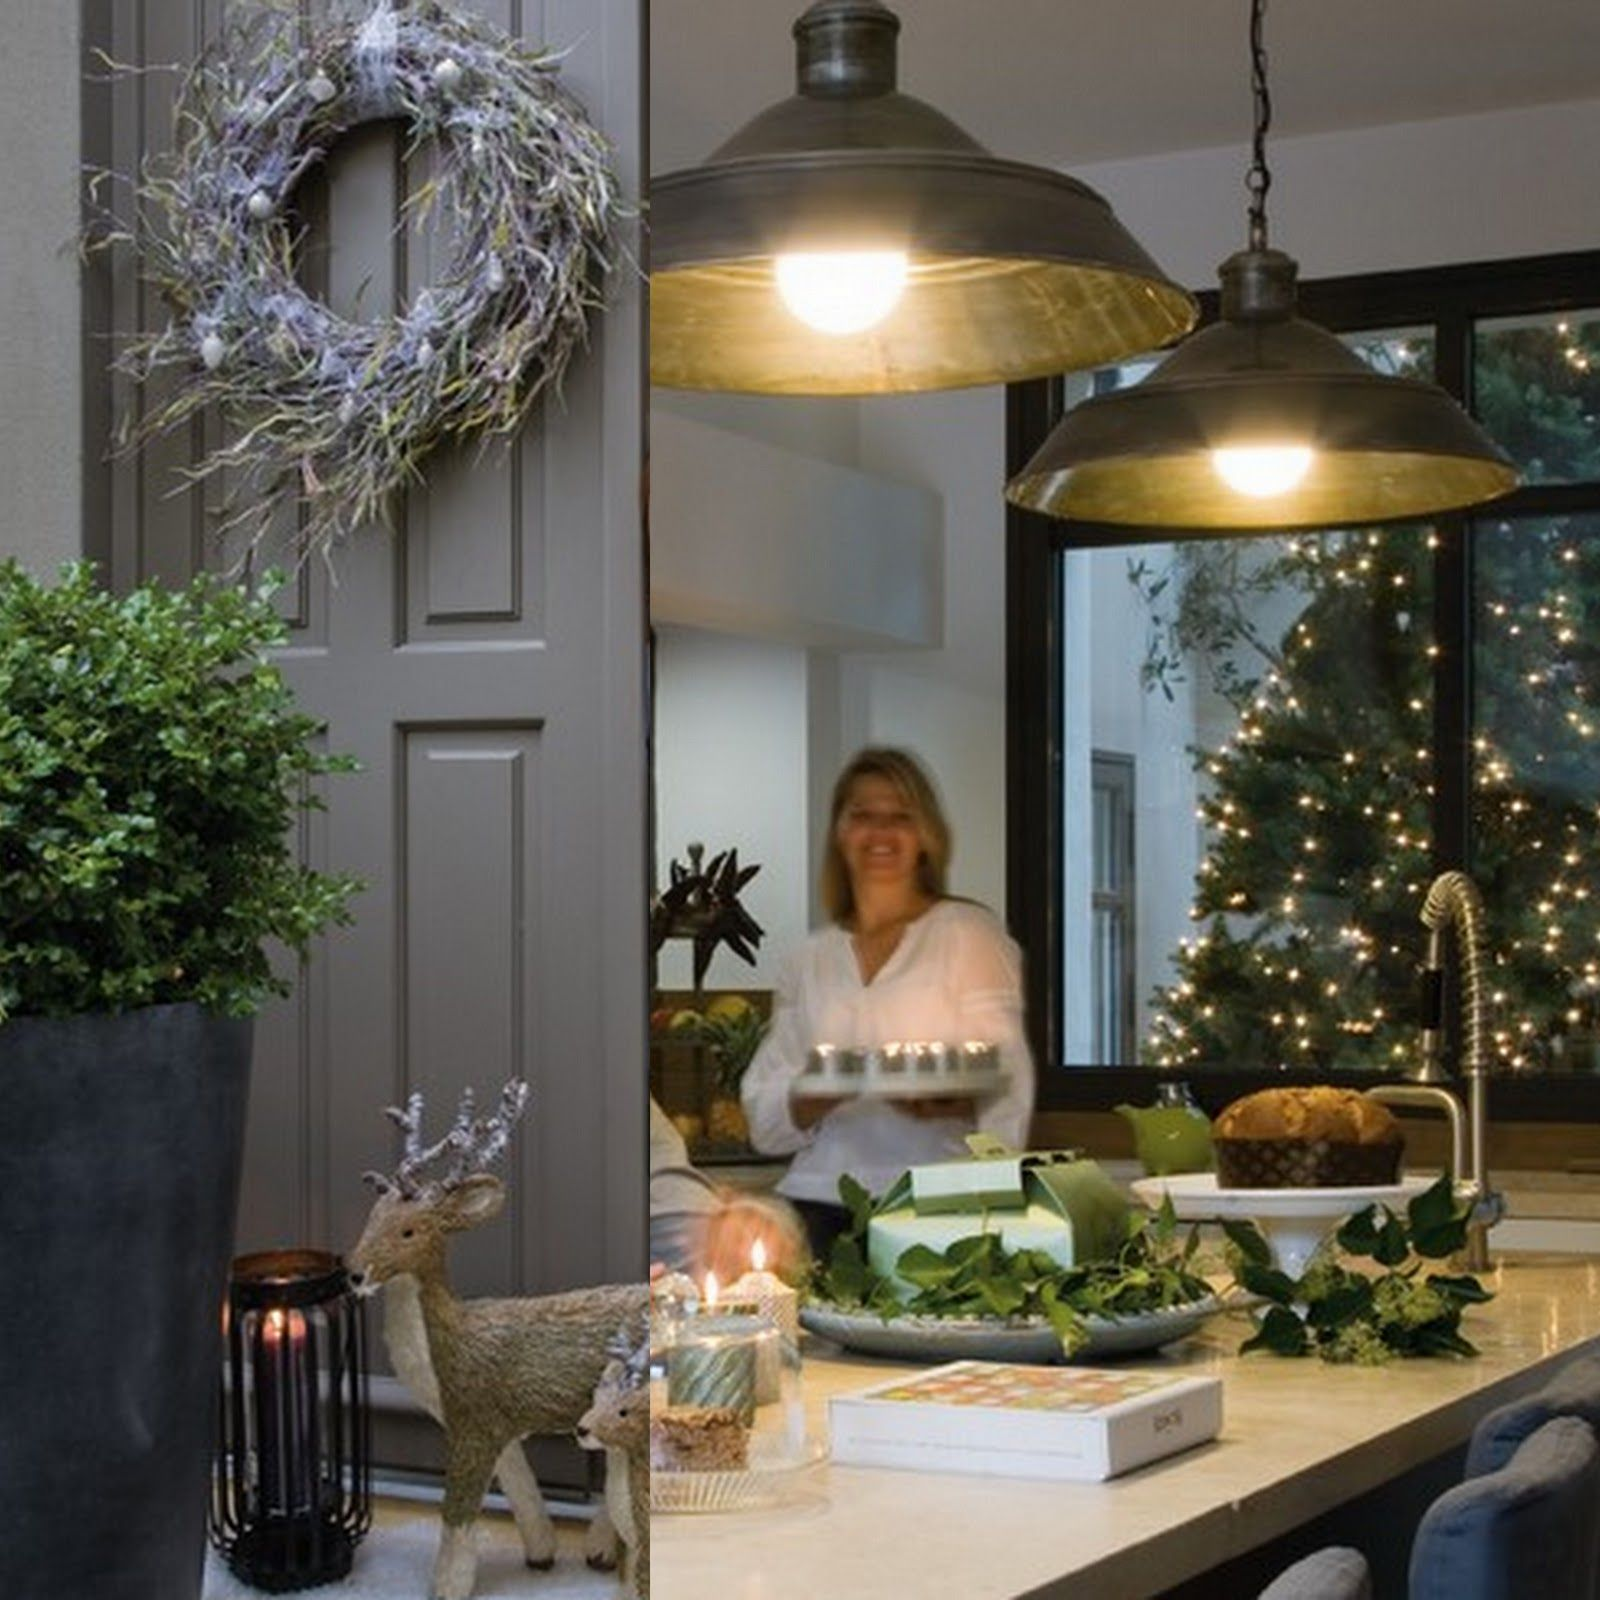 Country Kitchen Christmas Decorations: The Whole Look, The Tree Decorated Outside The Kitchen